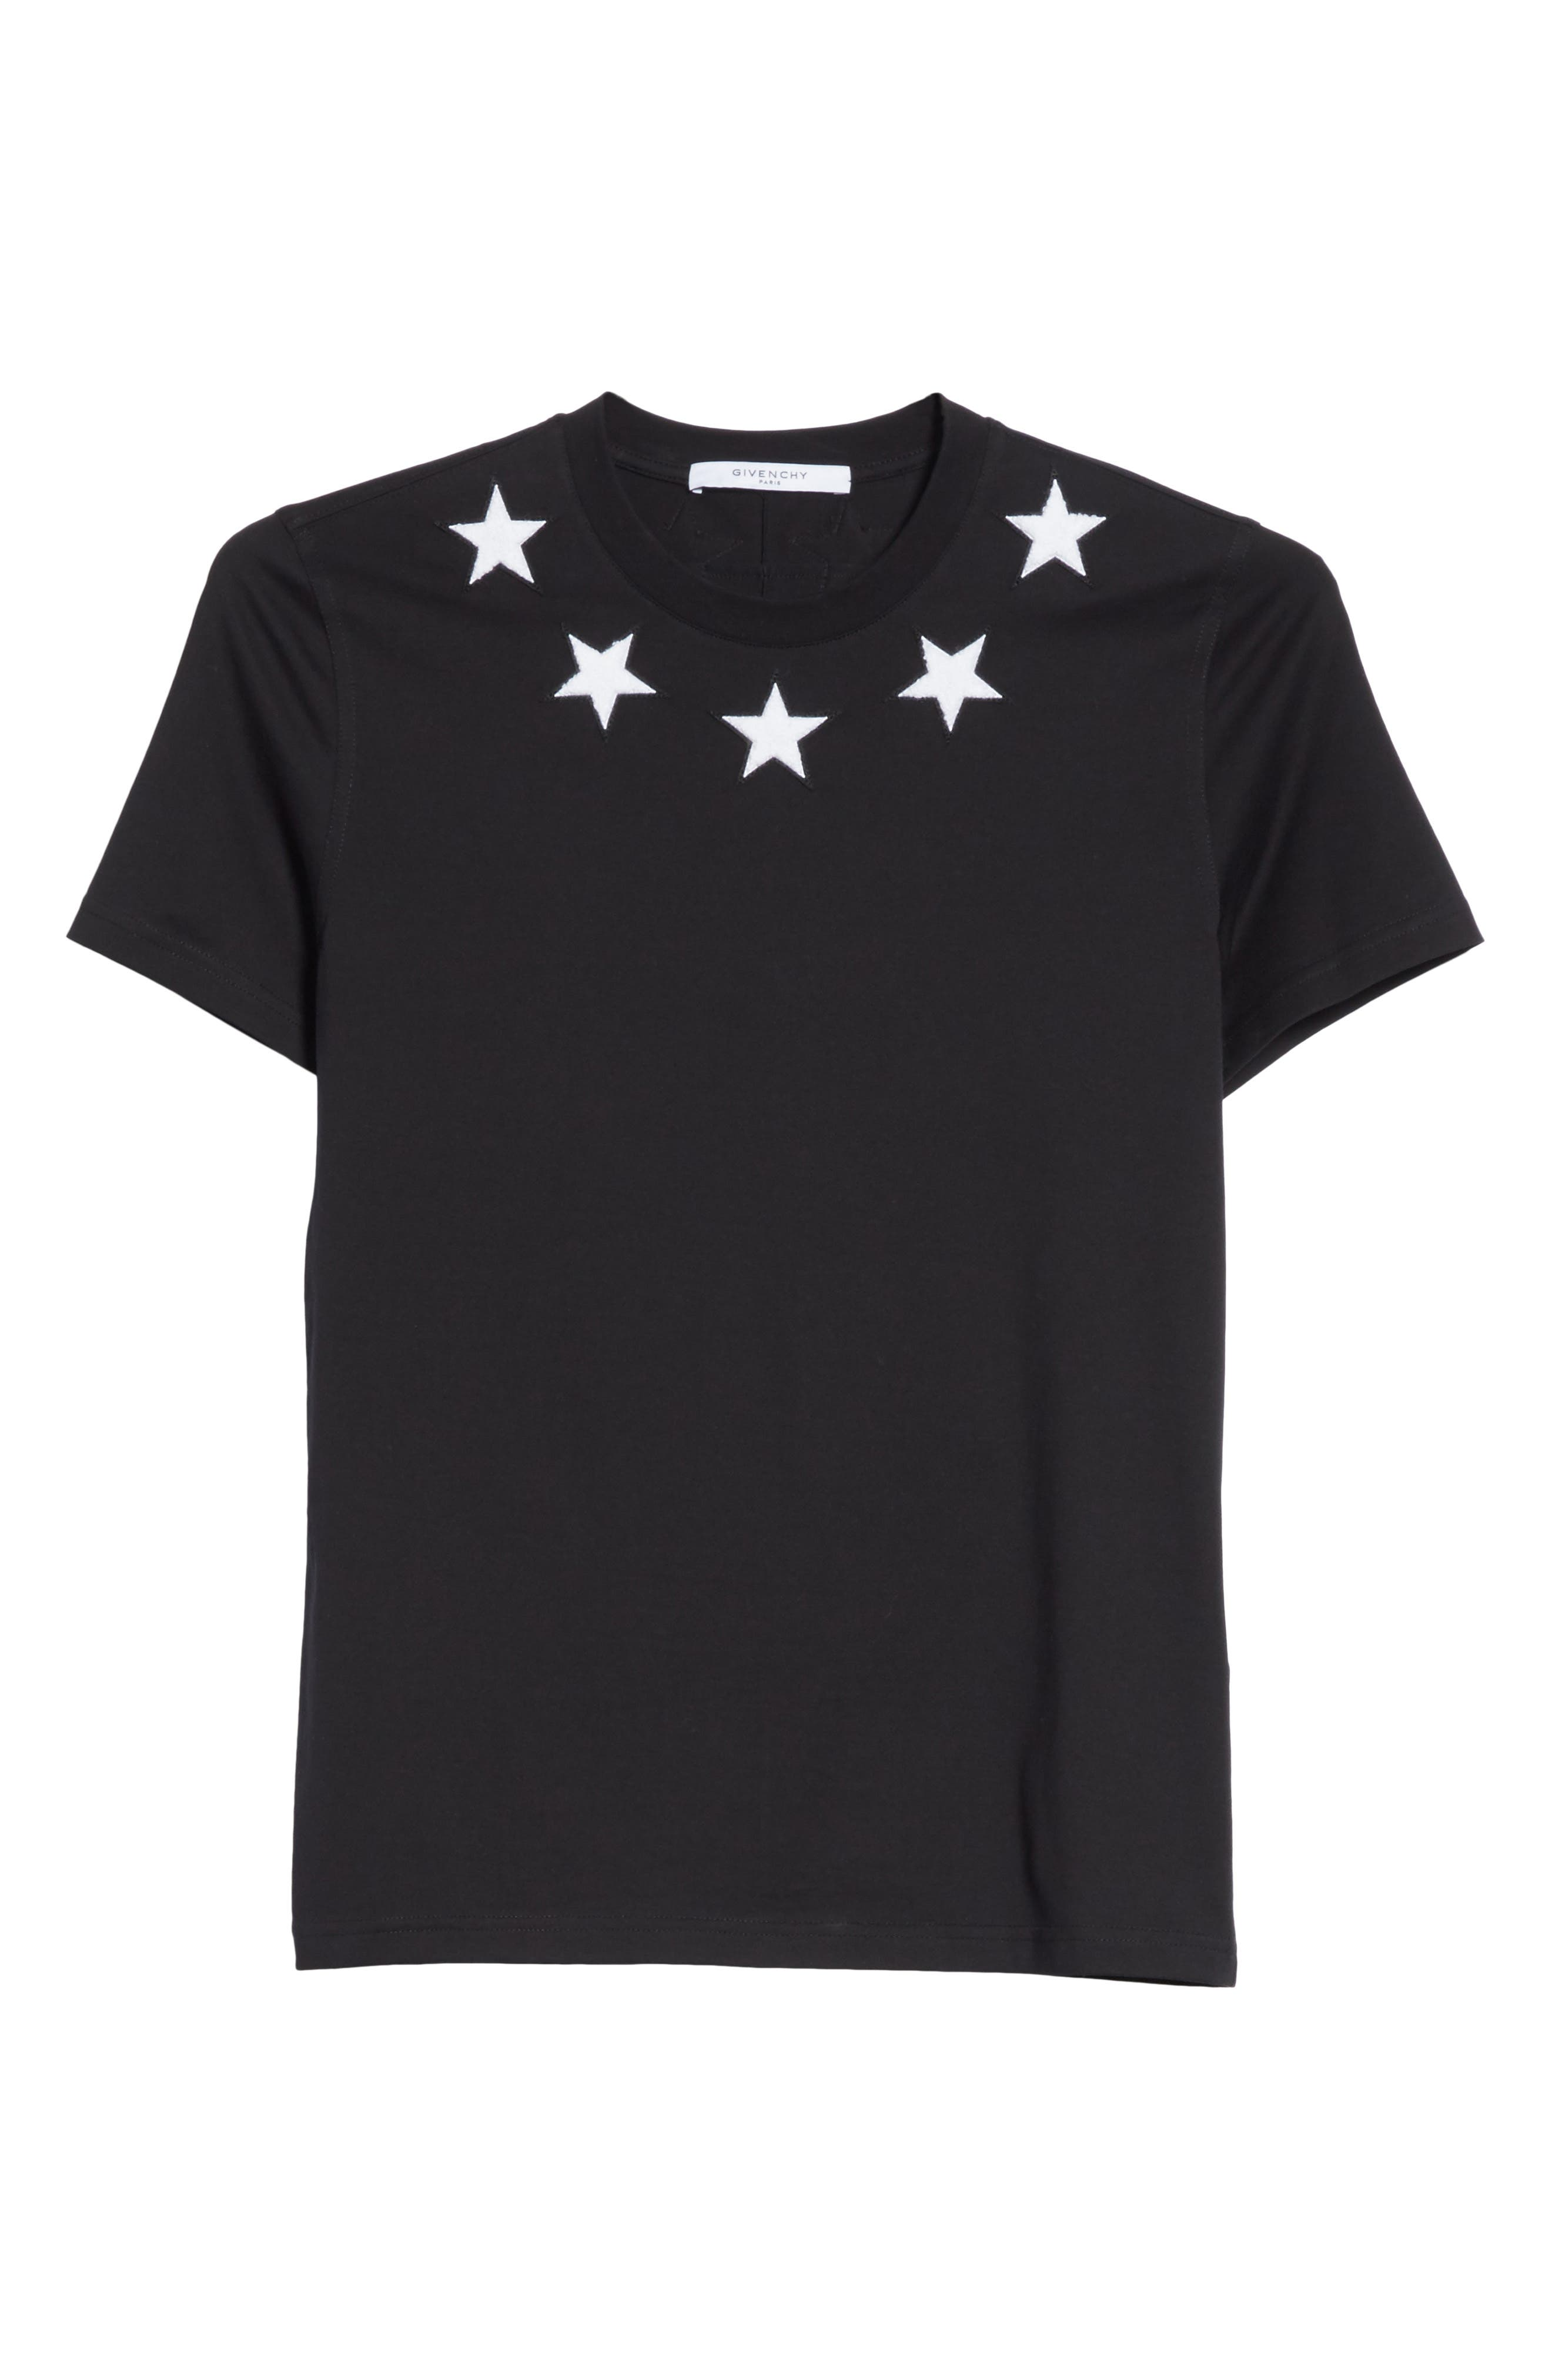 Star Appliqué T-Shirt,                             Alternate thumbnail 6, color,                             001